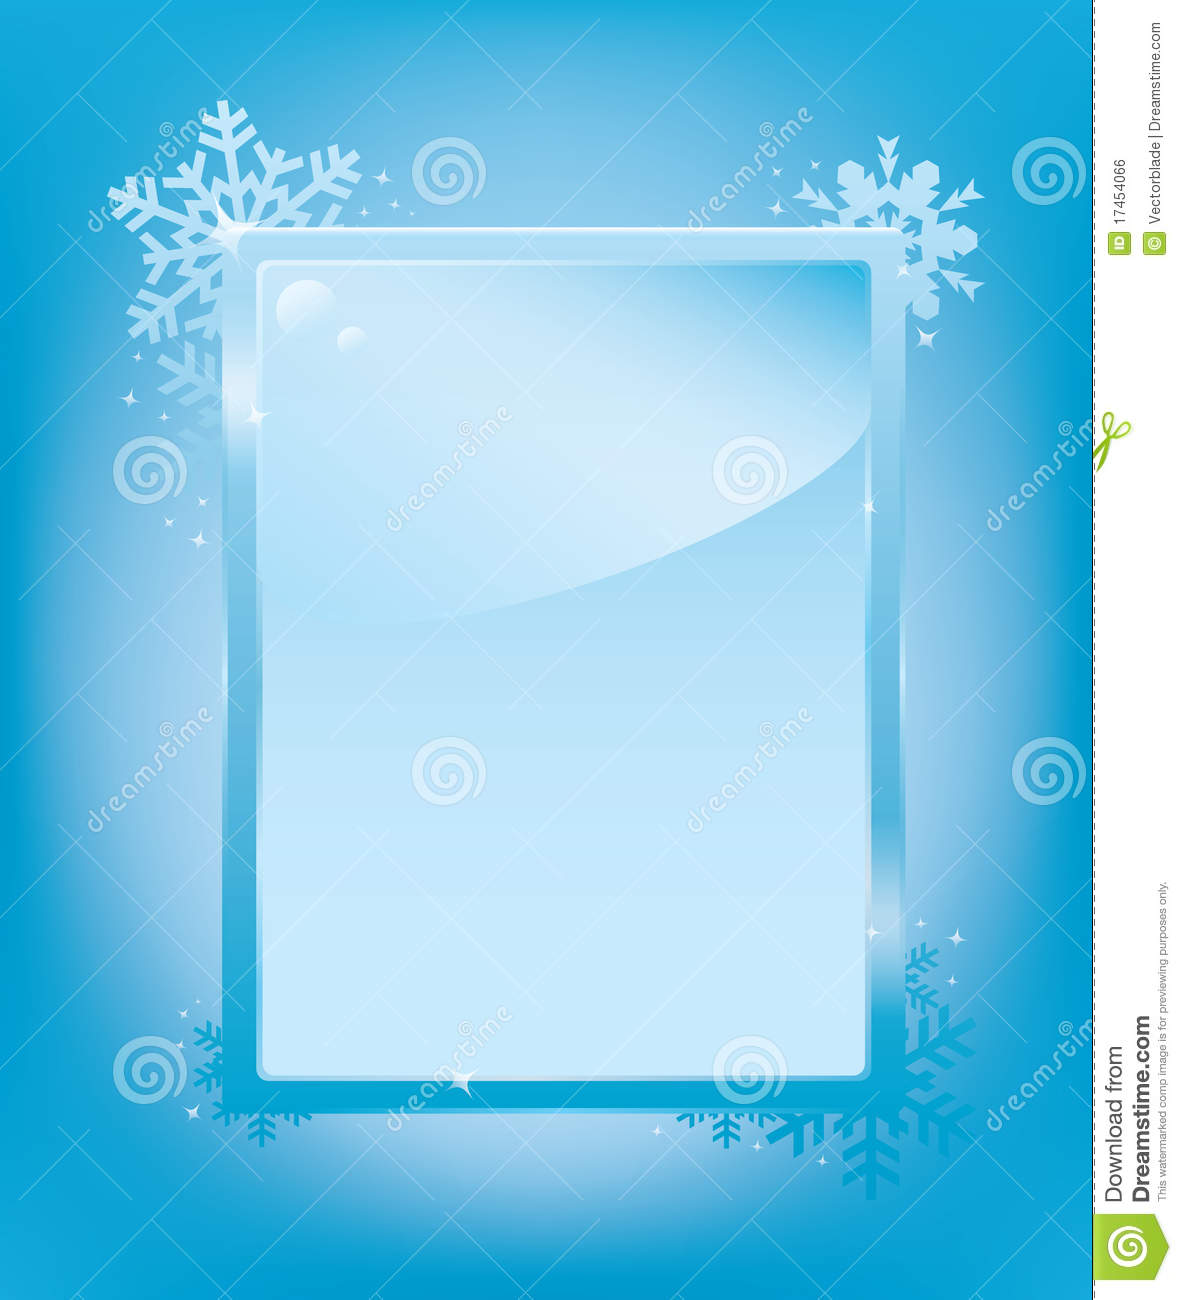 Freeze Frame Template Royalty Free Stock Image - Image: 17454066